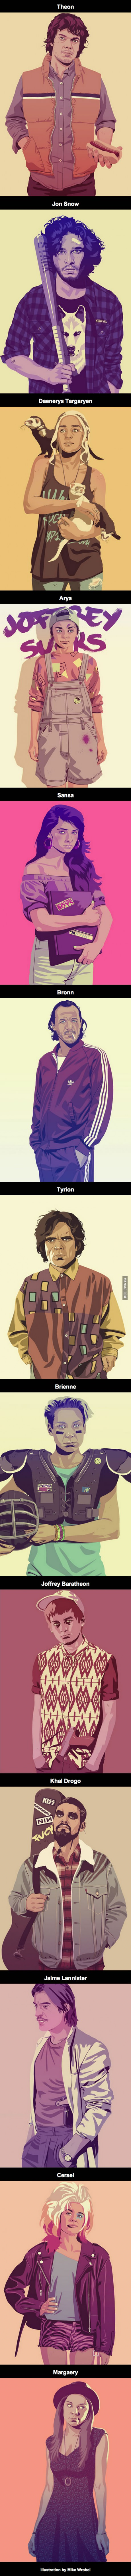 game of thrones characters reimagined in the 1980s and 1990s styles, amazing art